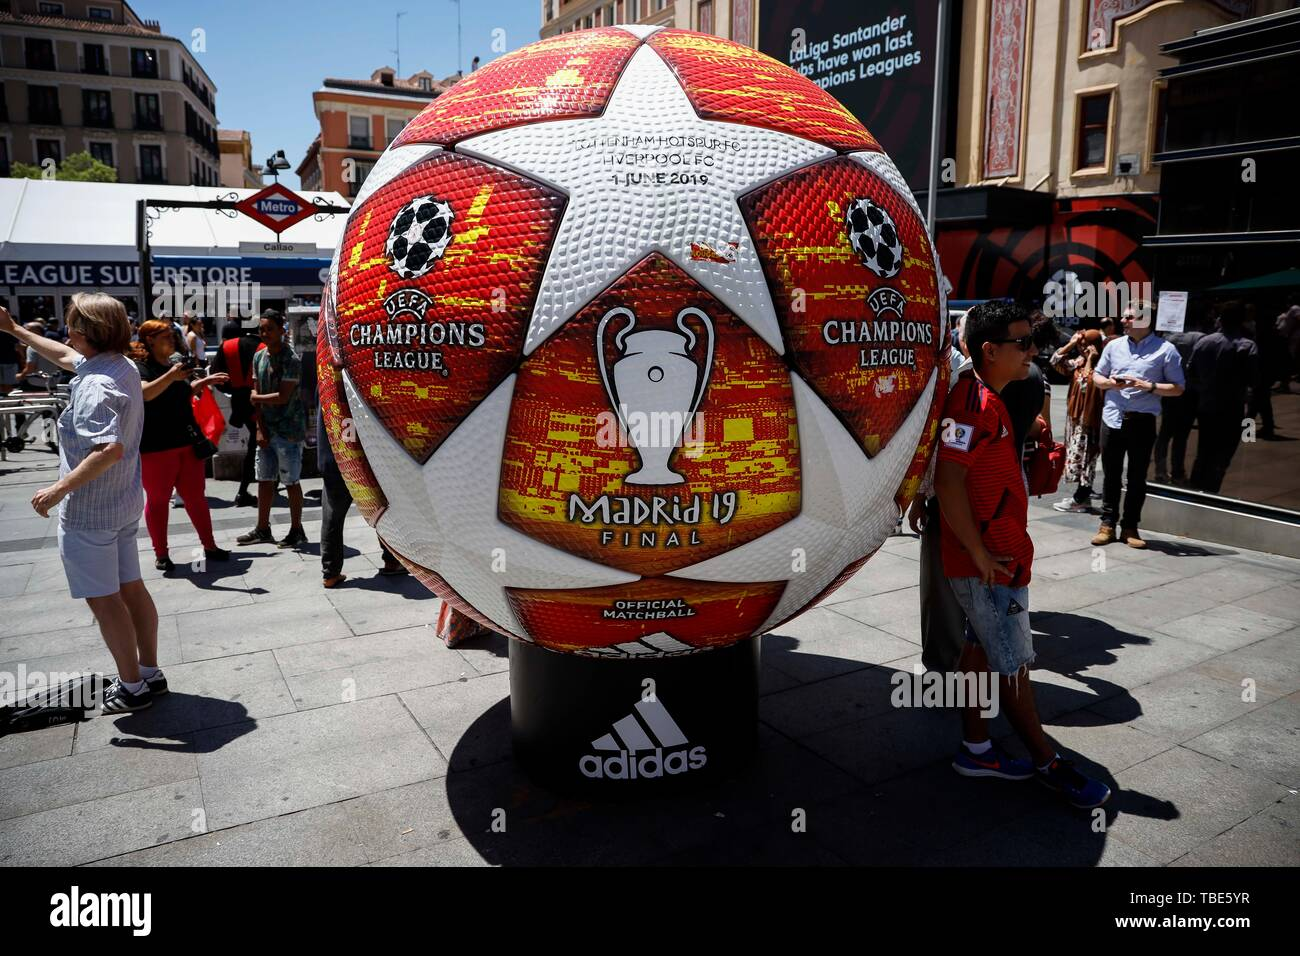 jamón Desde allí Perenne  Madrid, Spain. 01st June, 2019. A giant UEFA Champions League ball at the  fan zone in